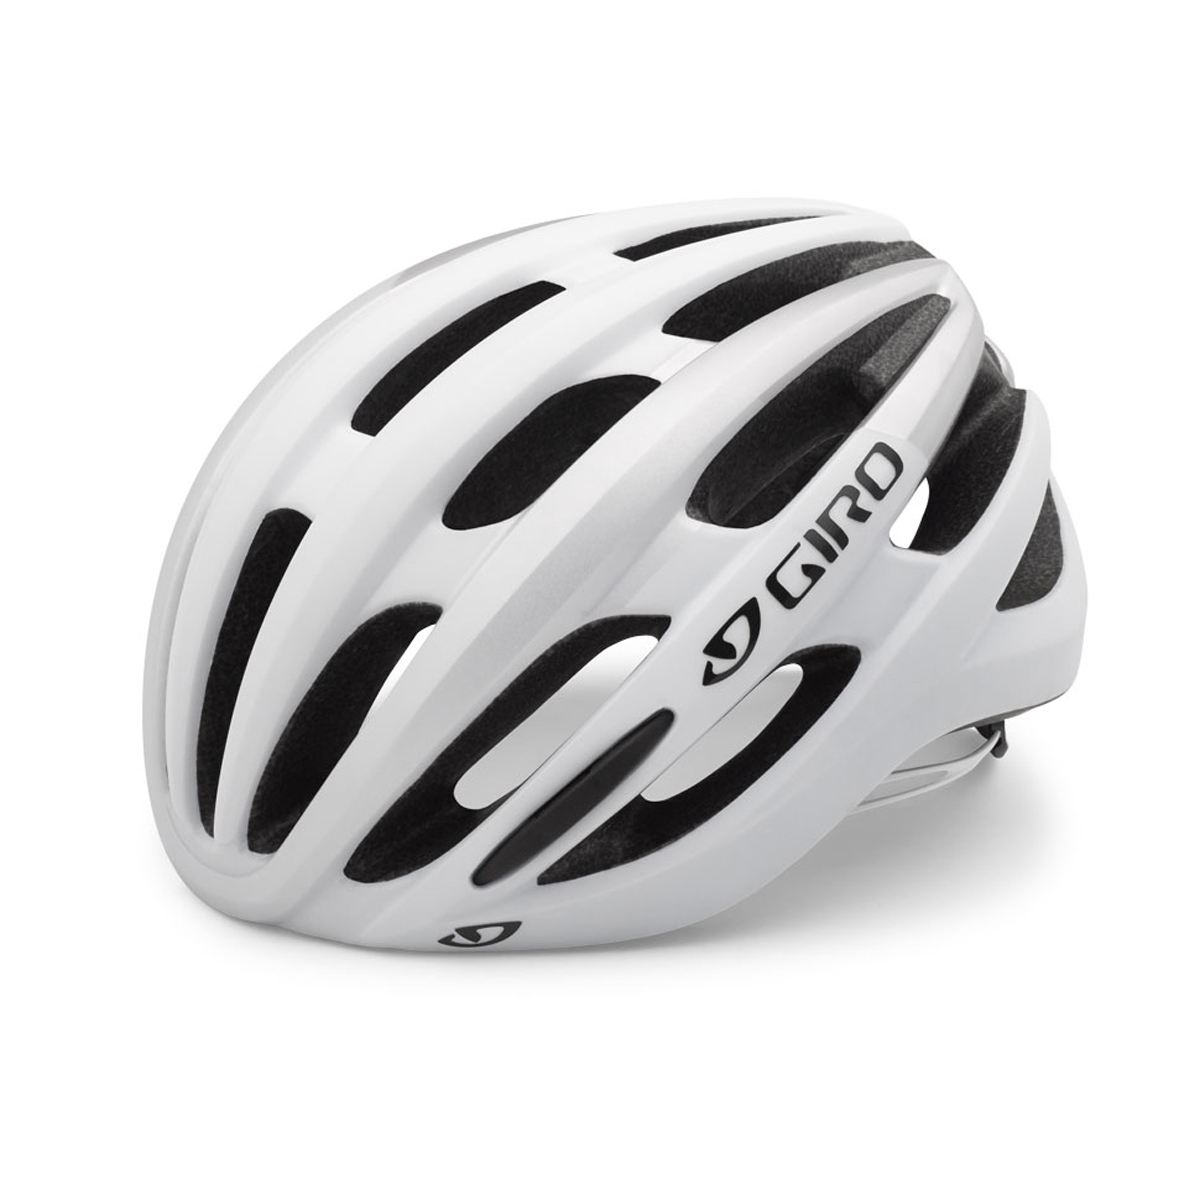 Giro Foray Helmet : Matt White/Silver